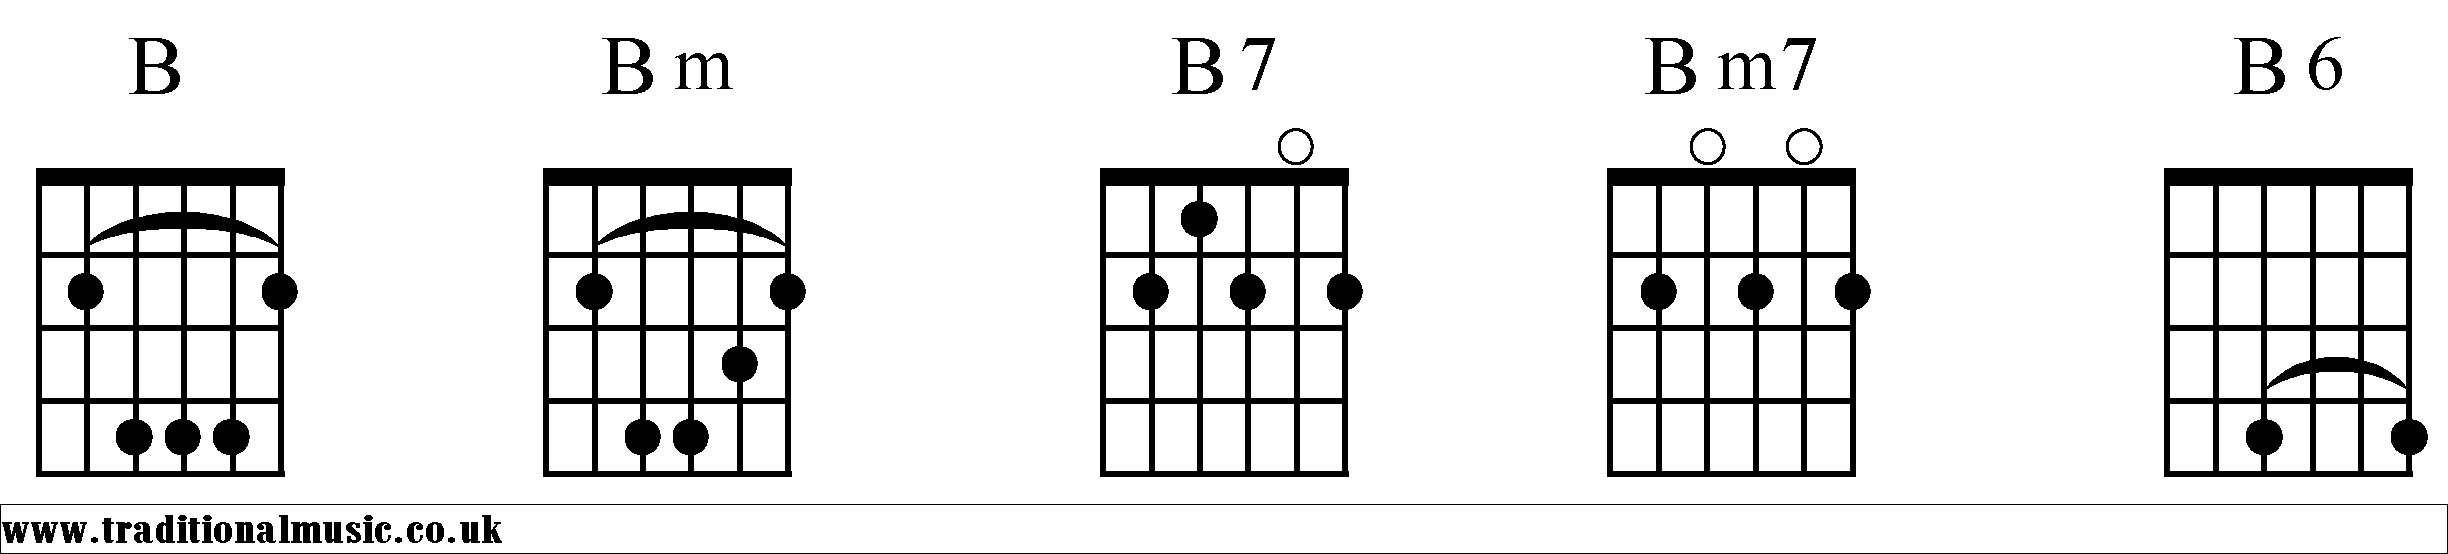 B Chord Guitar Easy Choice Image Basic Guitar Chords Finger Placement